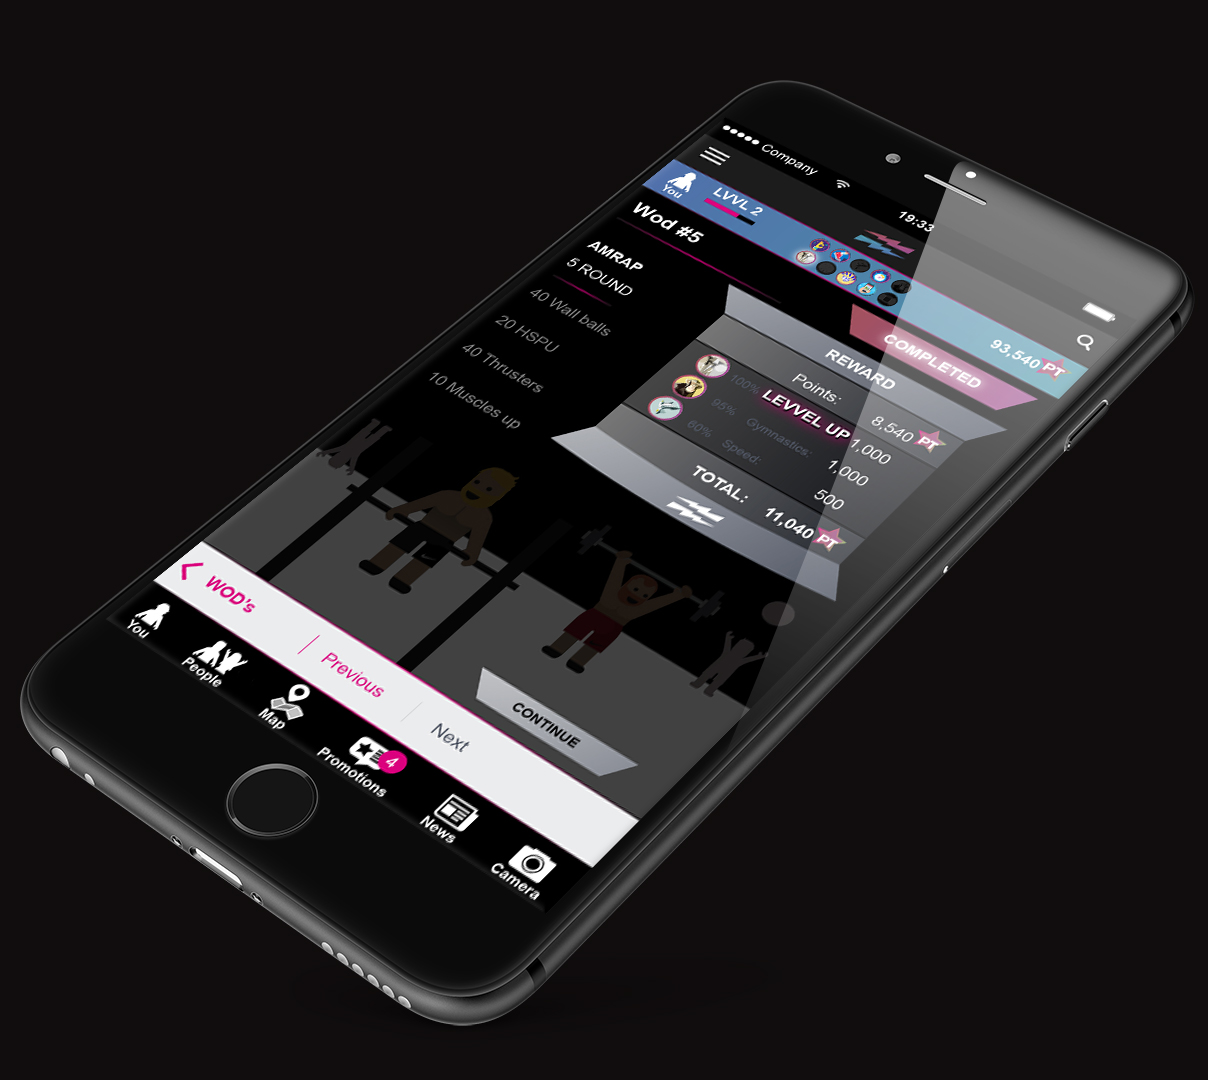 LEVVEL iPhone_Plus_app_competition_WOD 2.jpg